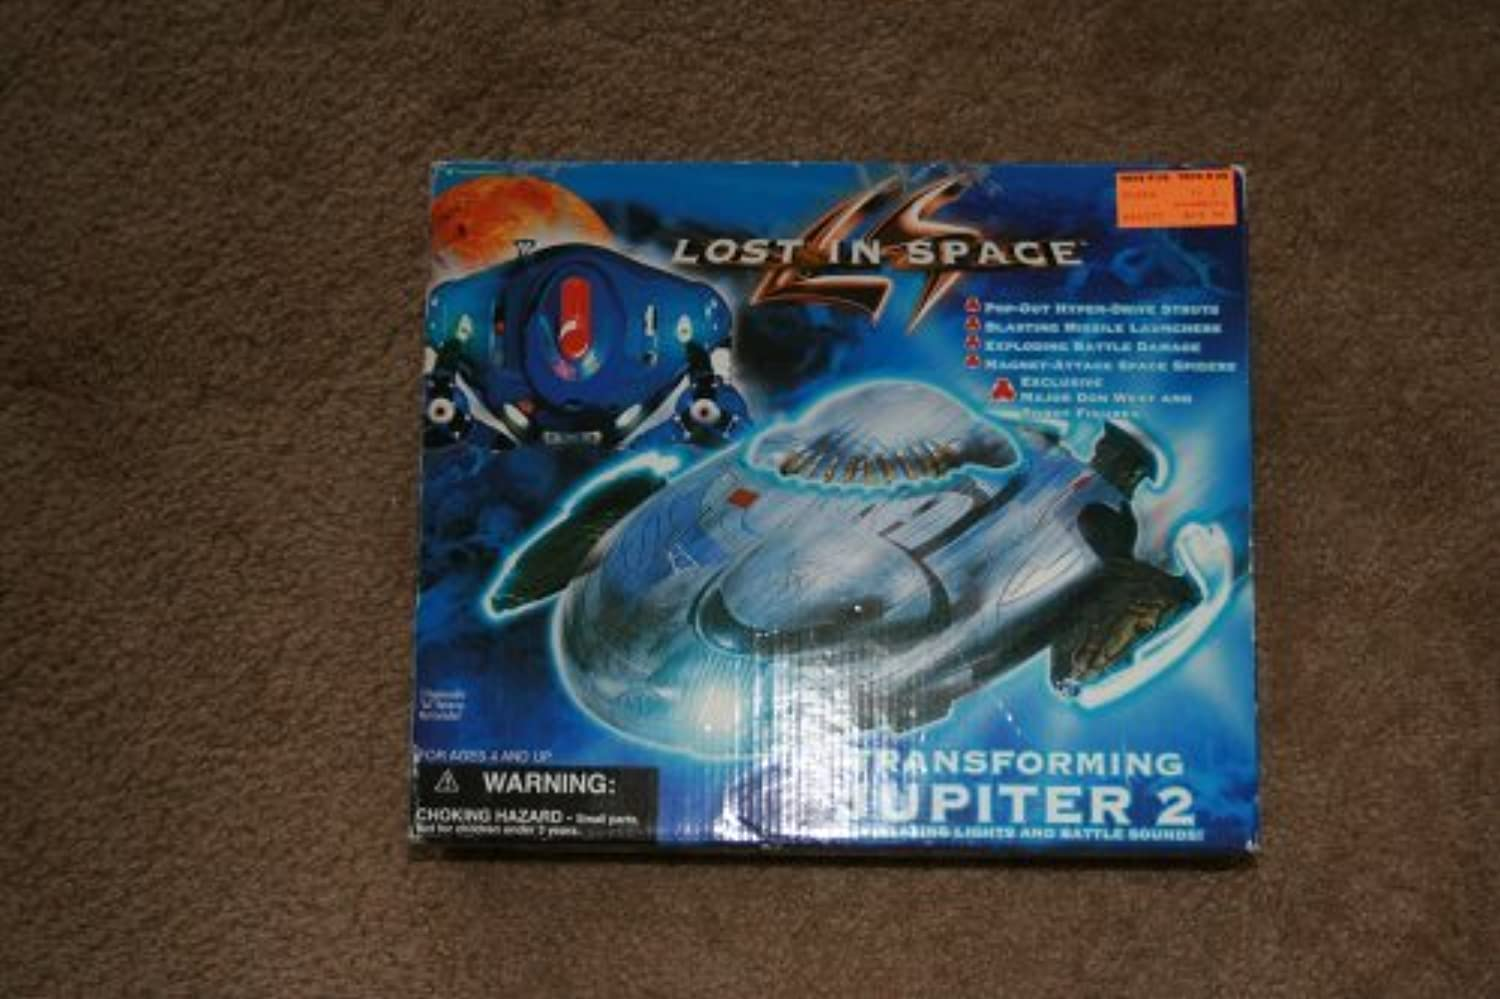 Lost in Space - Transforming Jupiter 2 by Lost In Space